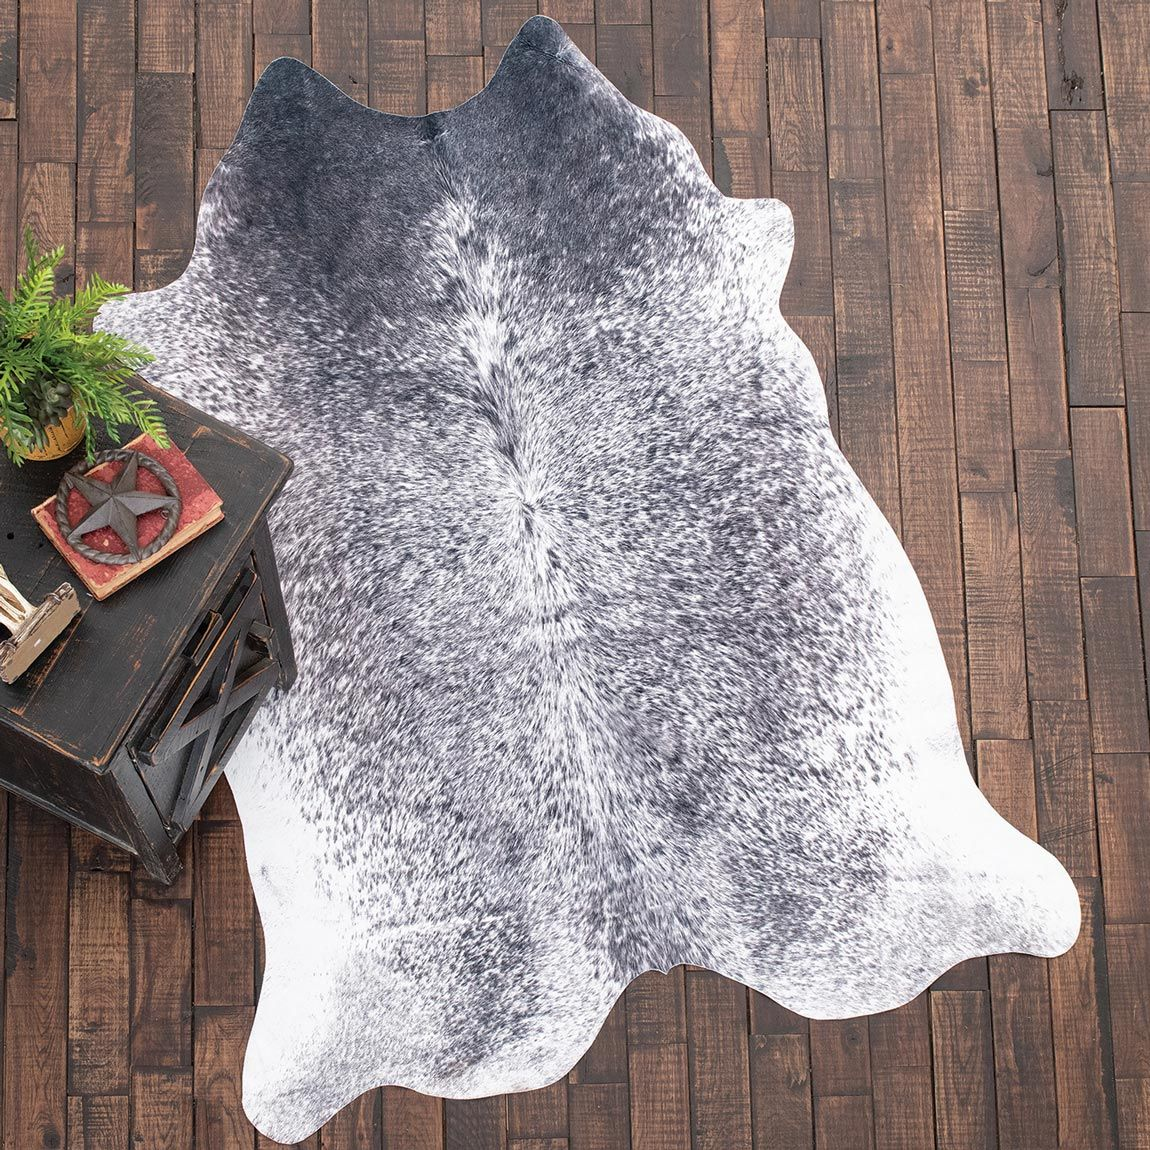 Faux Cowhide Rug - Black & White Brindle